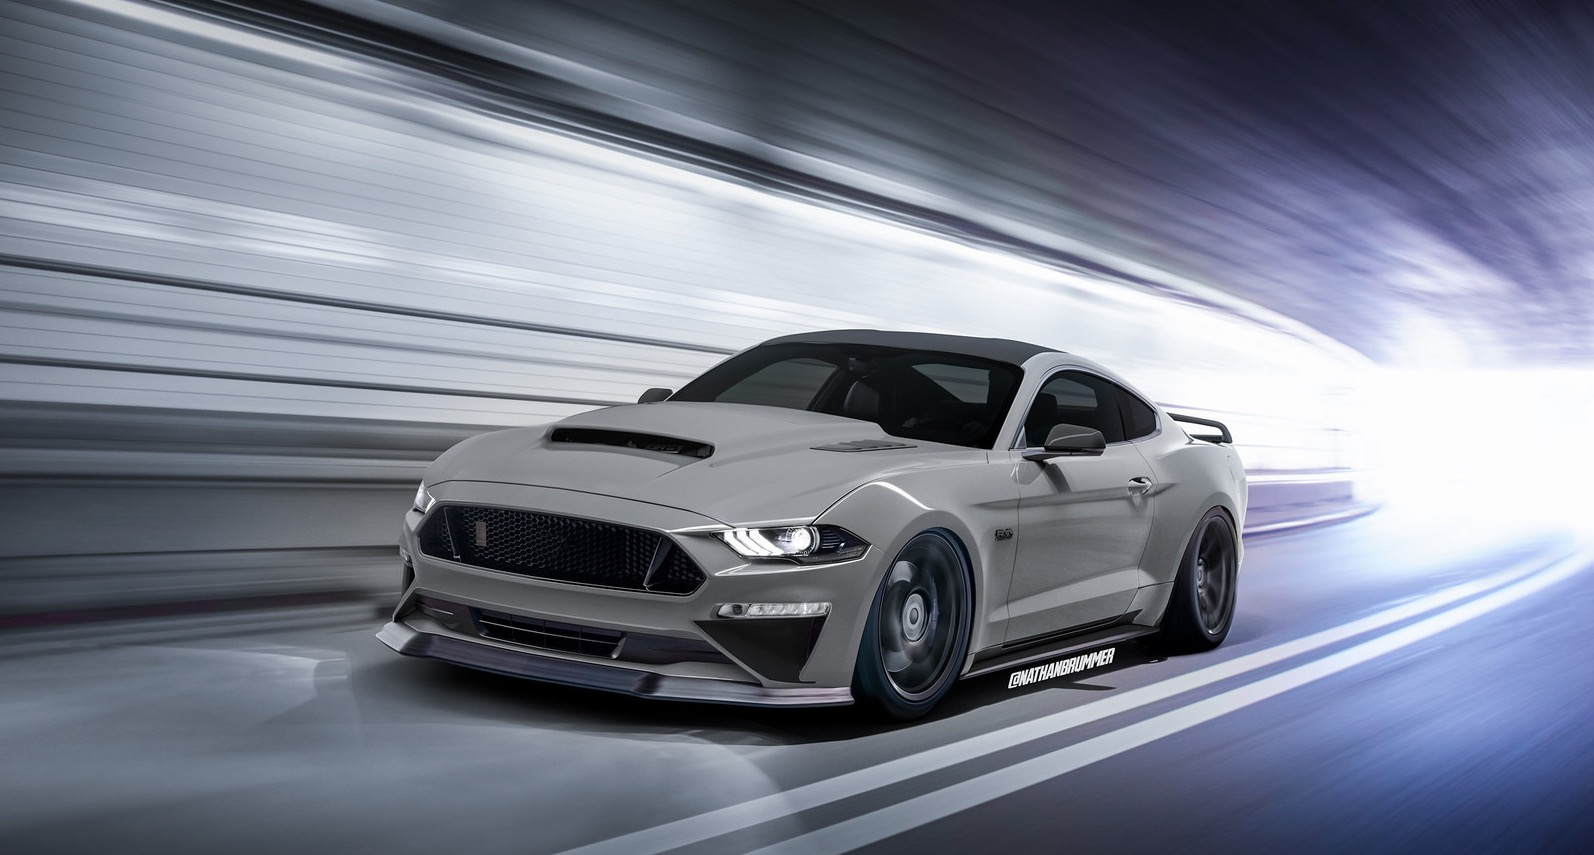 55 A 2019 Ford Mustang Shelby Gt500 Speed Test